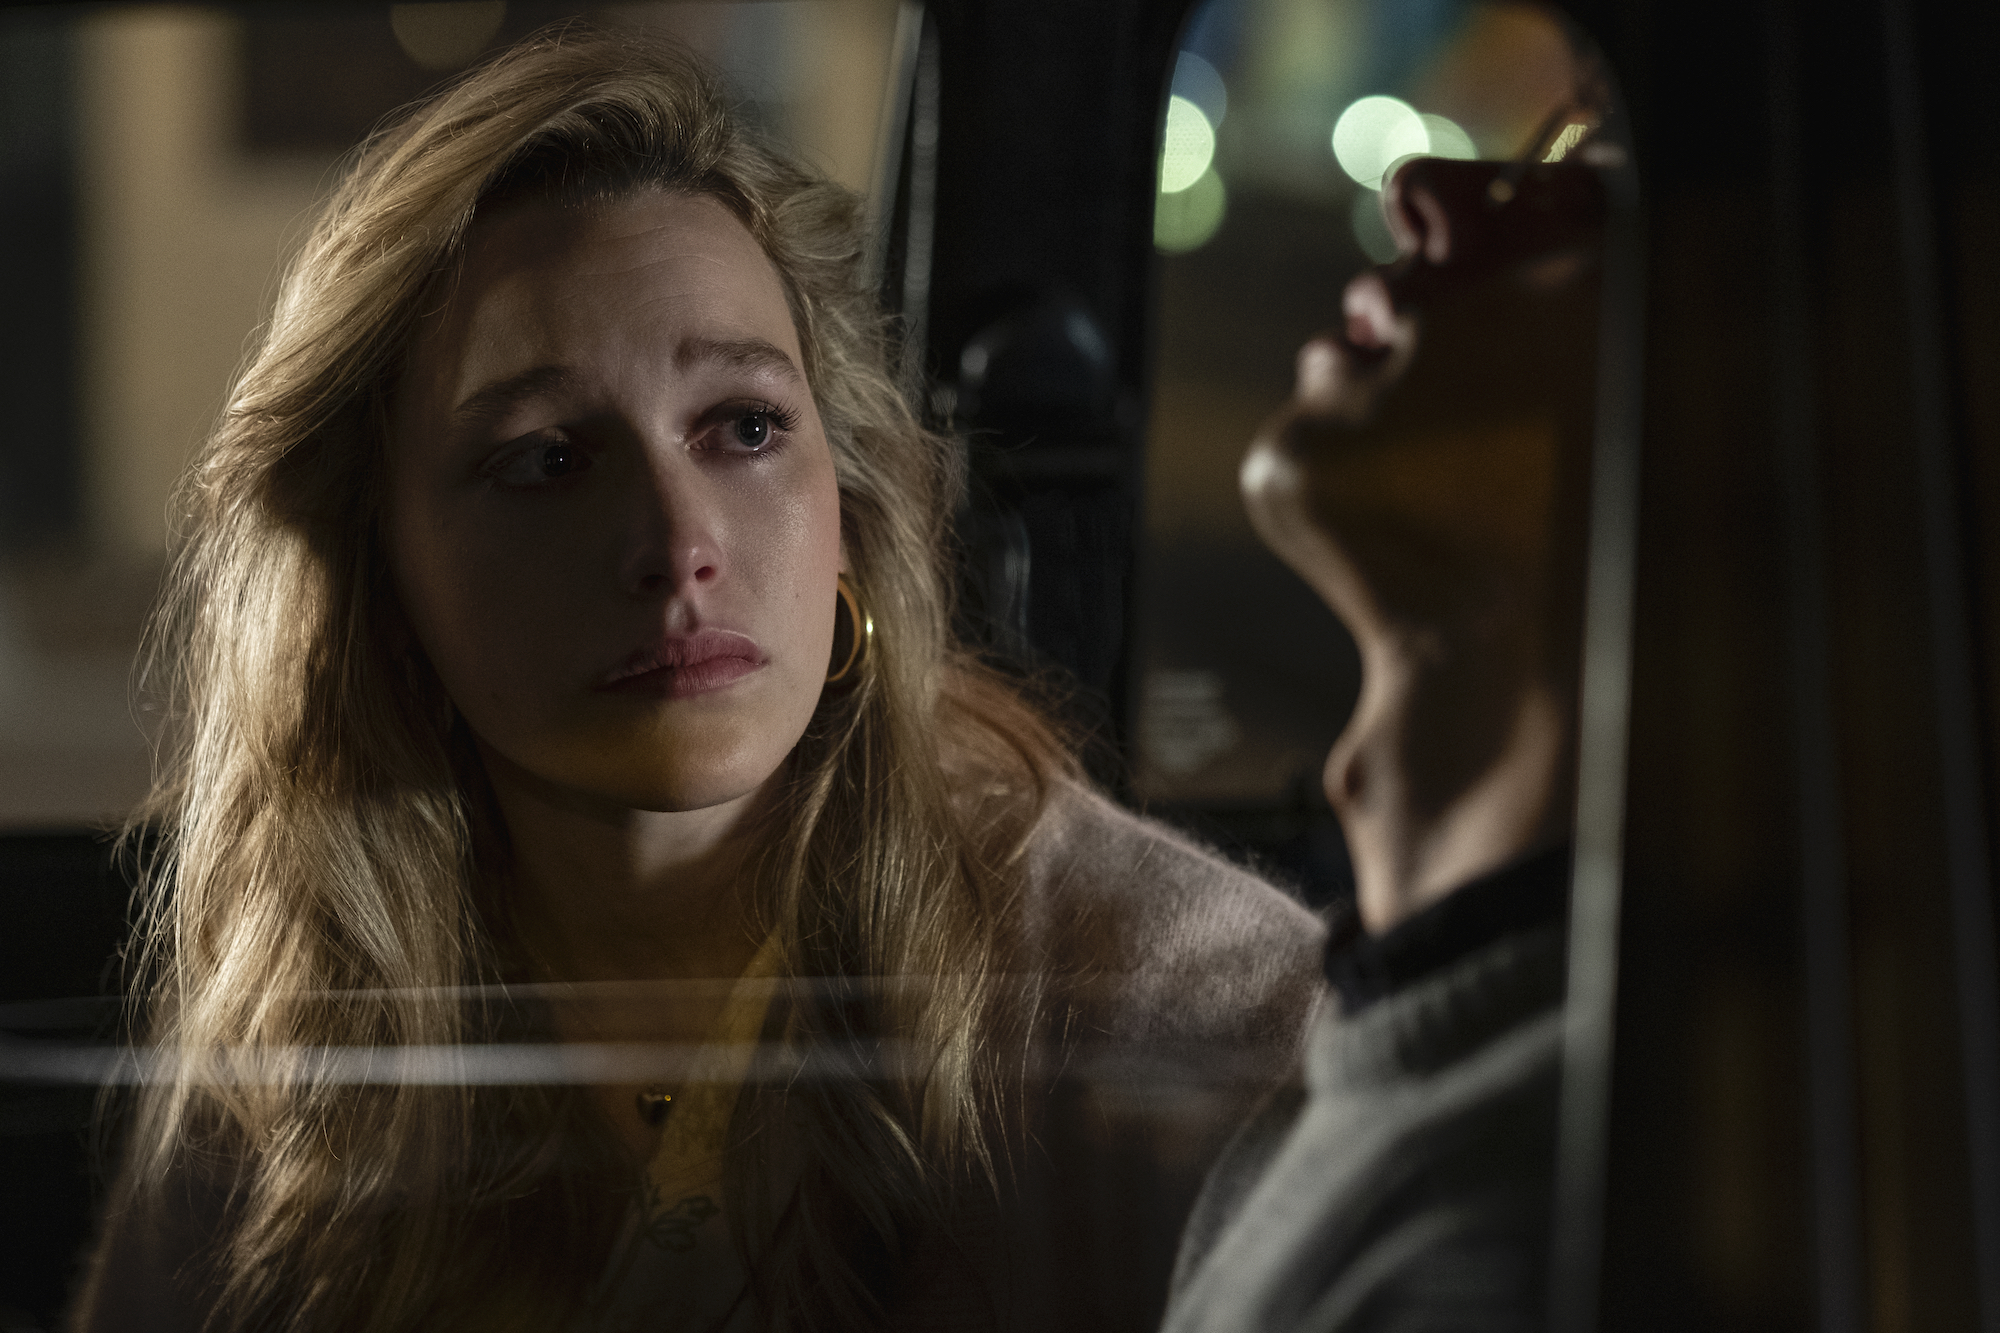 Victoria Pedretti as Dani and Roby Attal as Eddie in 'THE HAUNTING OF BLY MANOR' as she comes out to him in his car.